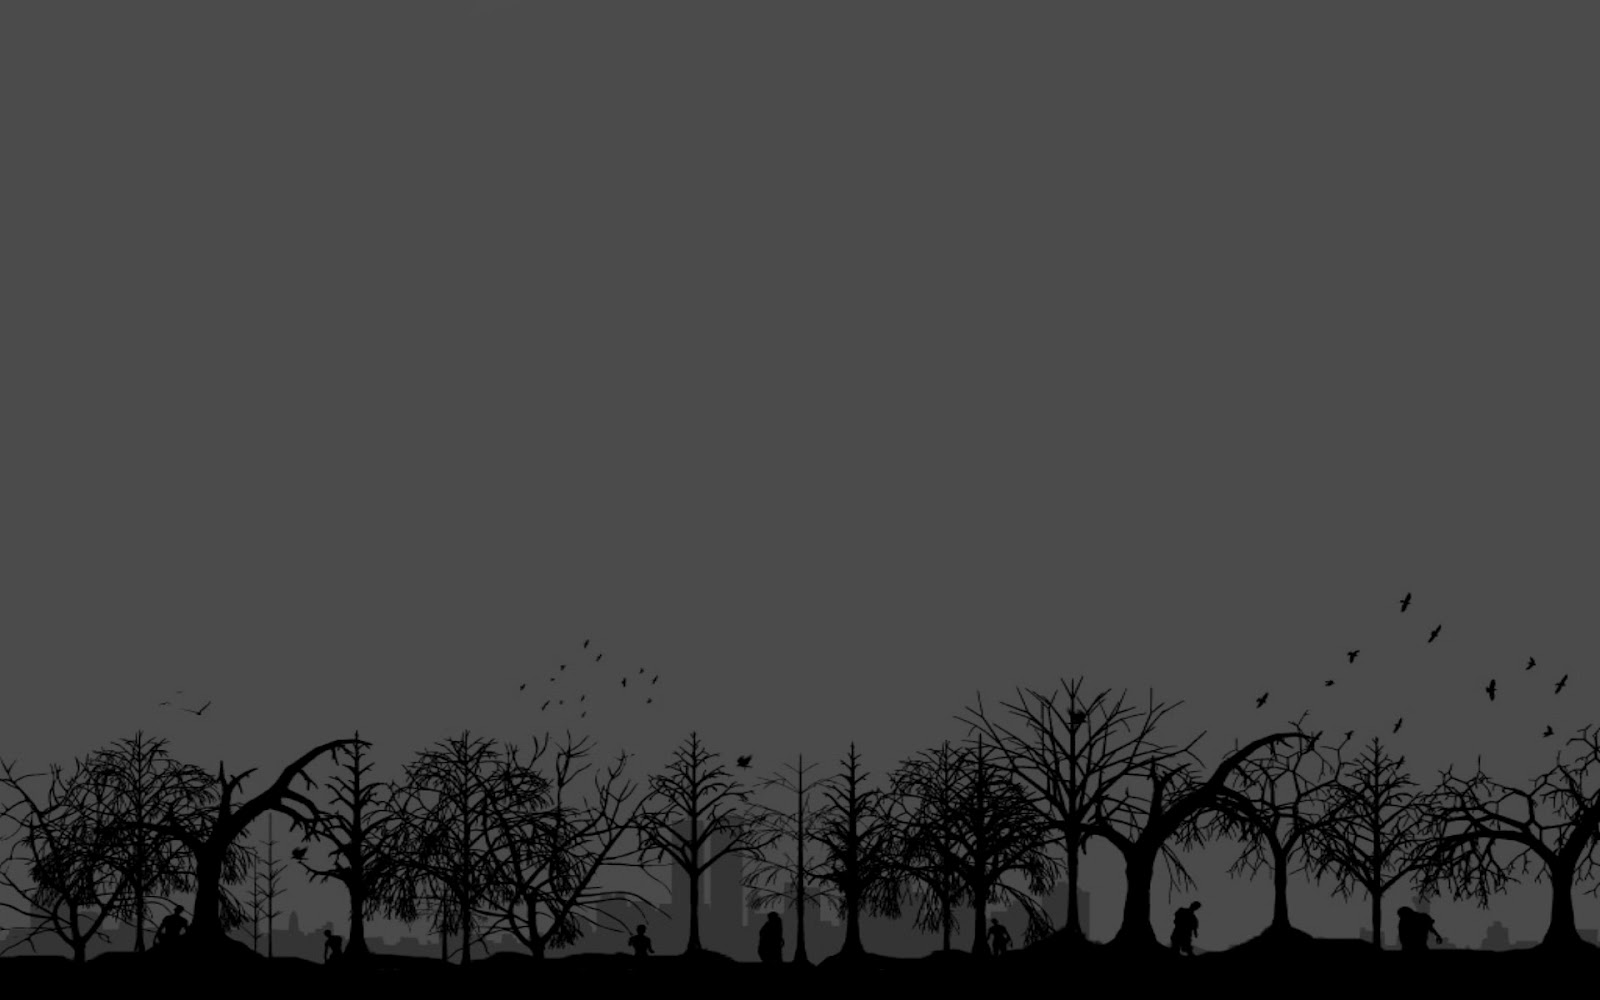 wallpaper a day vector zombie apocalypse end of world